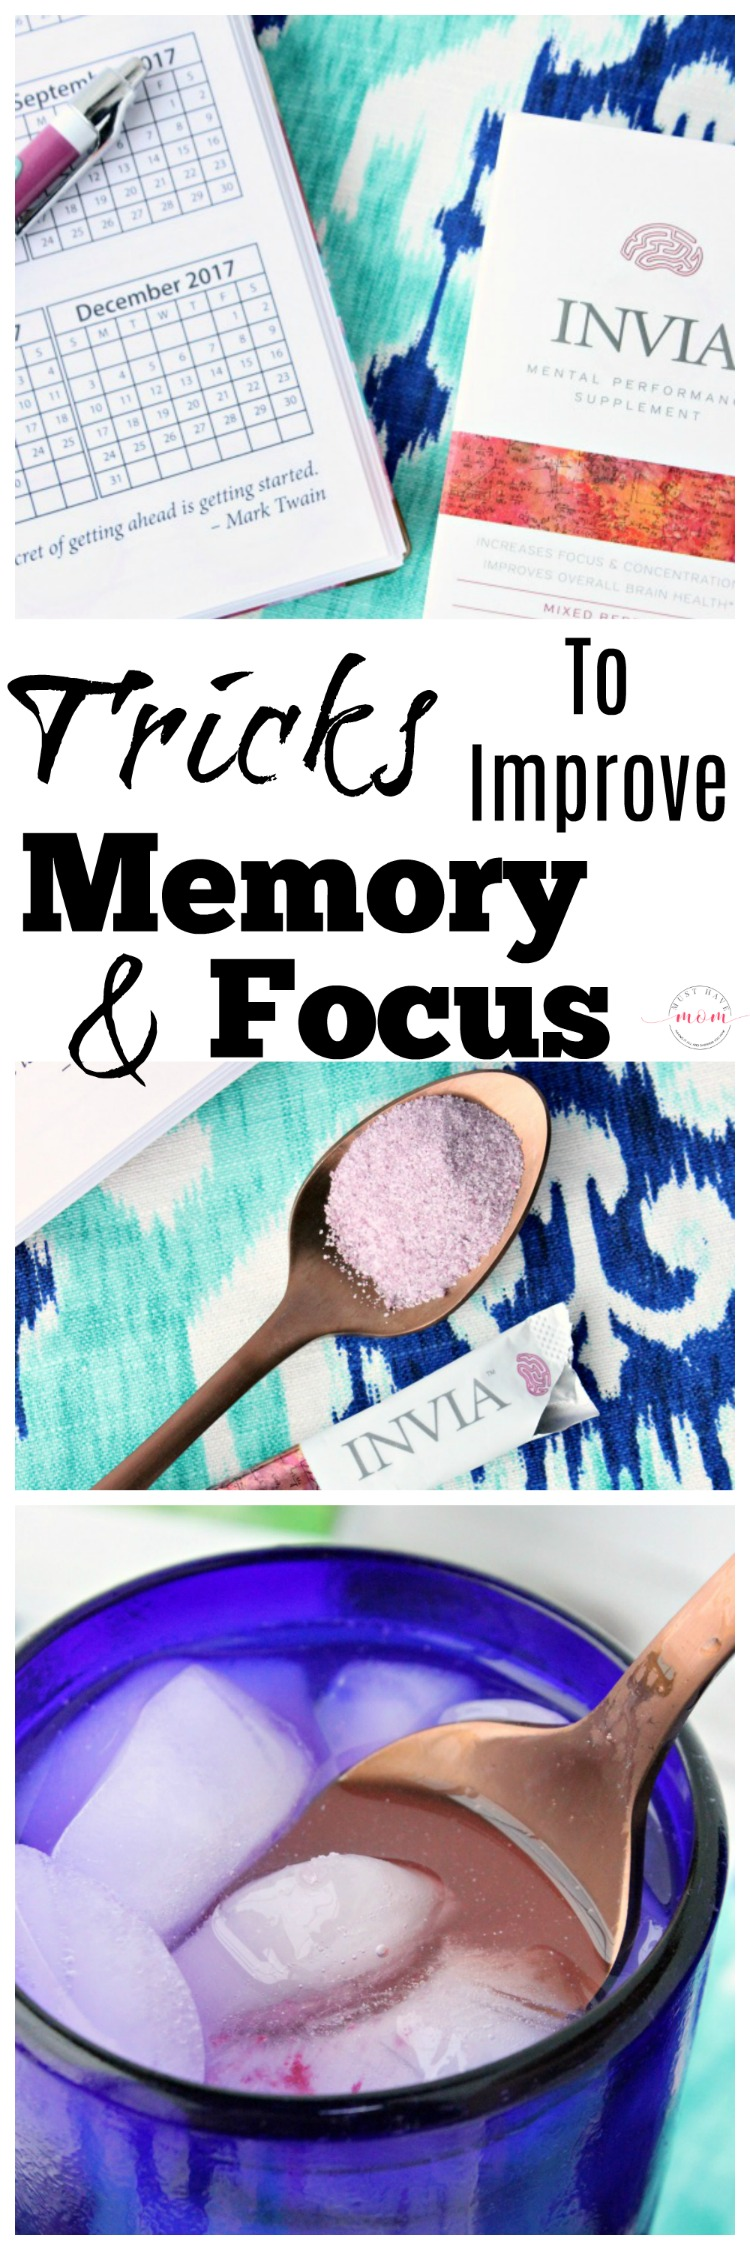 Tricks to improve memory and focus! Try these tips to increase your focus and get a memory boost.